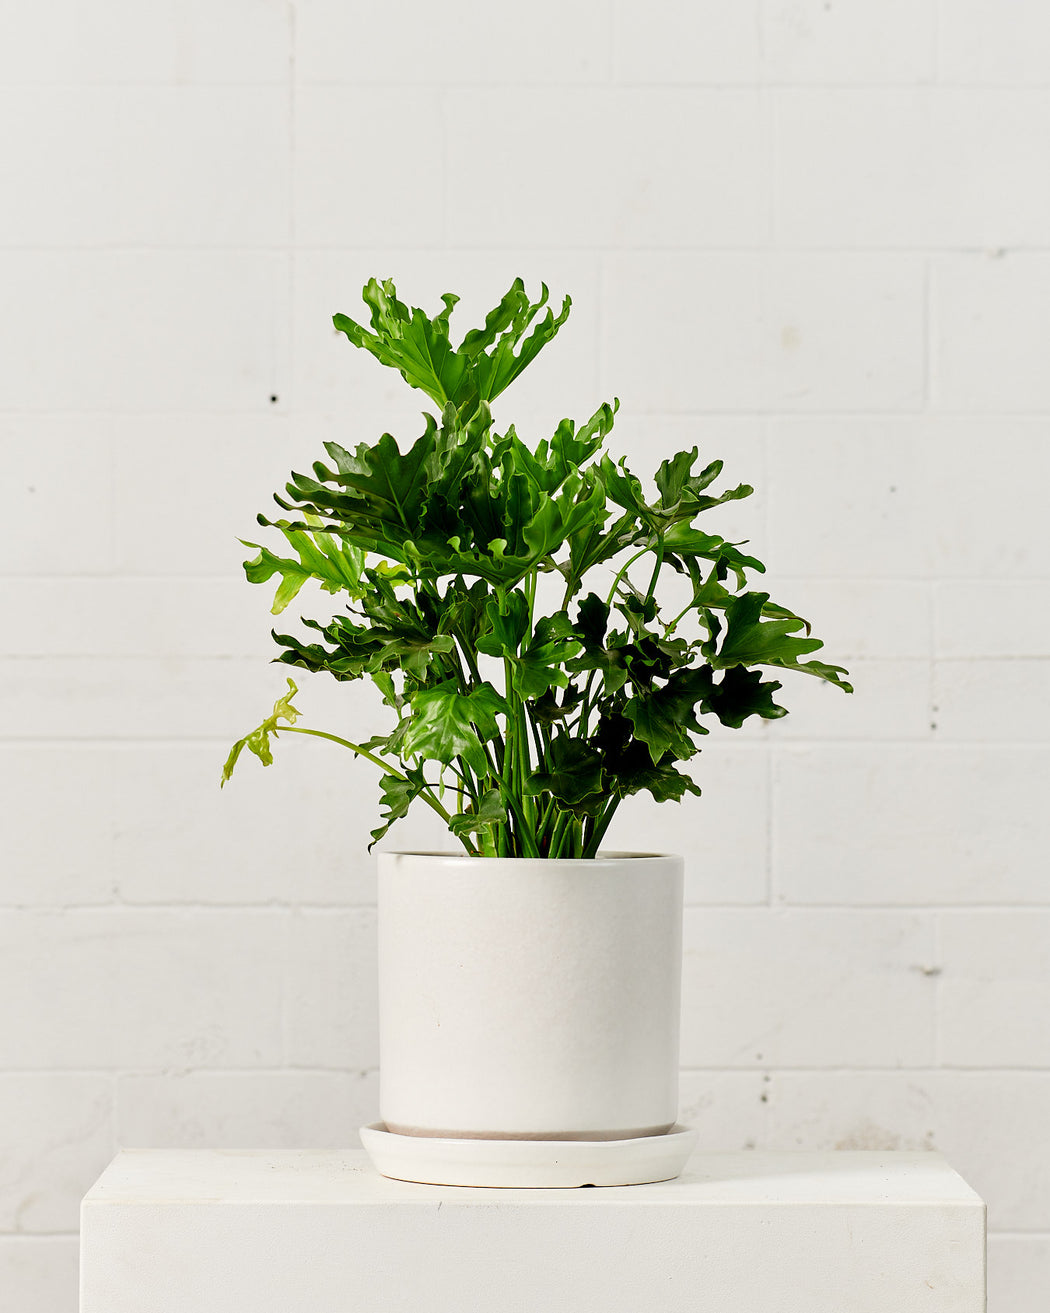 "PHILODENDRON SELLOUM 'HOPE' 8"" Grower Pot"